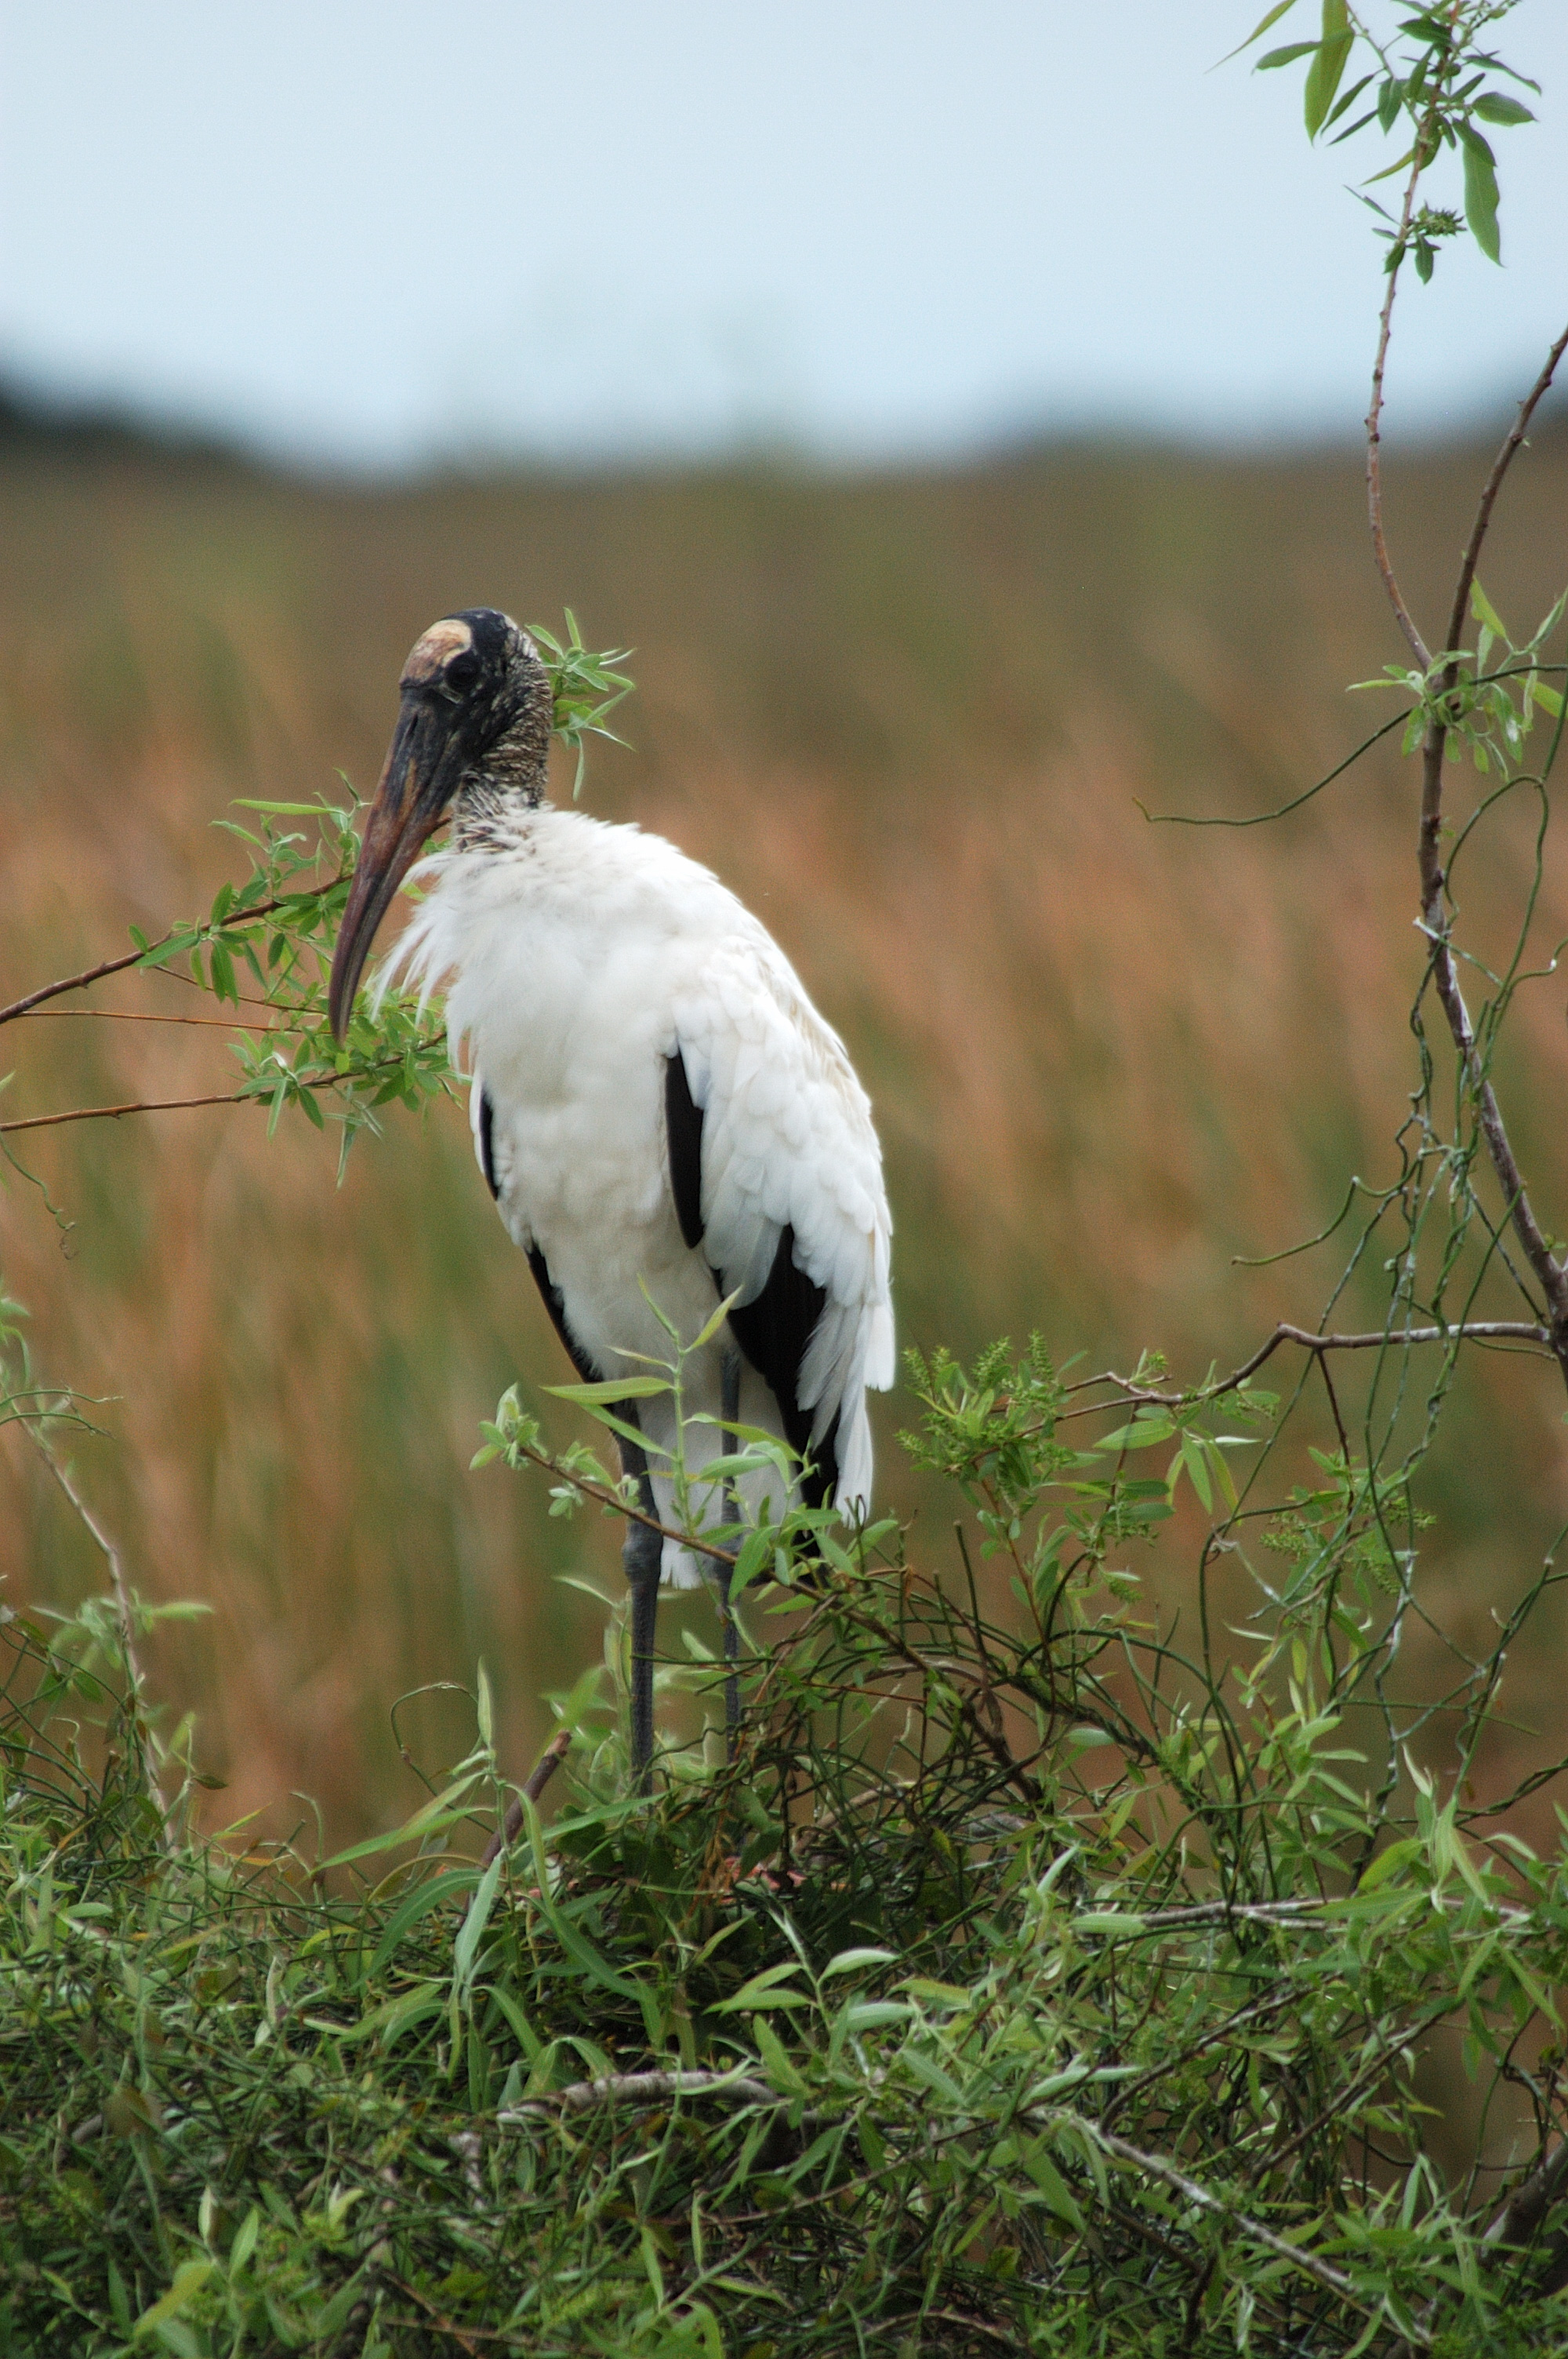 A rare wood stork at the Everglades National Park; conservation efforts have increased their population and I seem to see one on almost every visit to South Florida now.